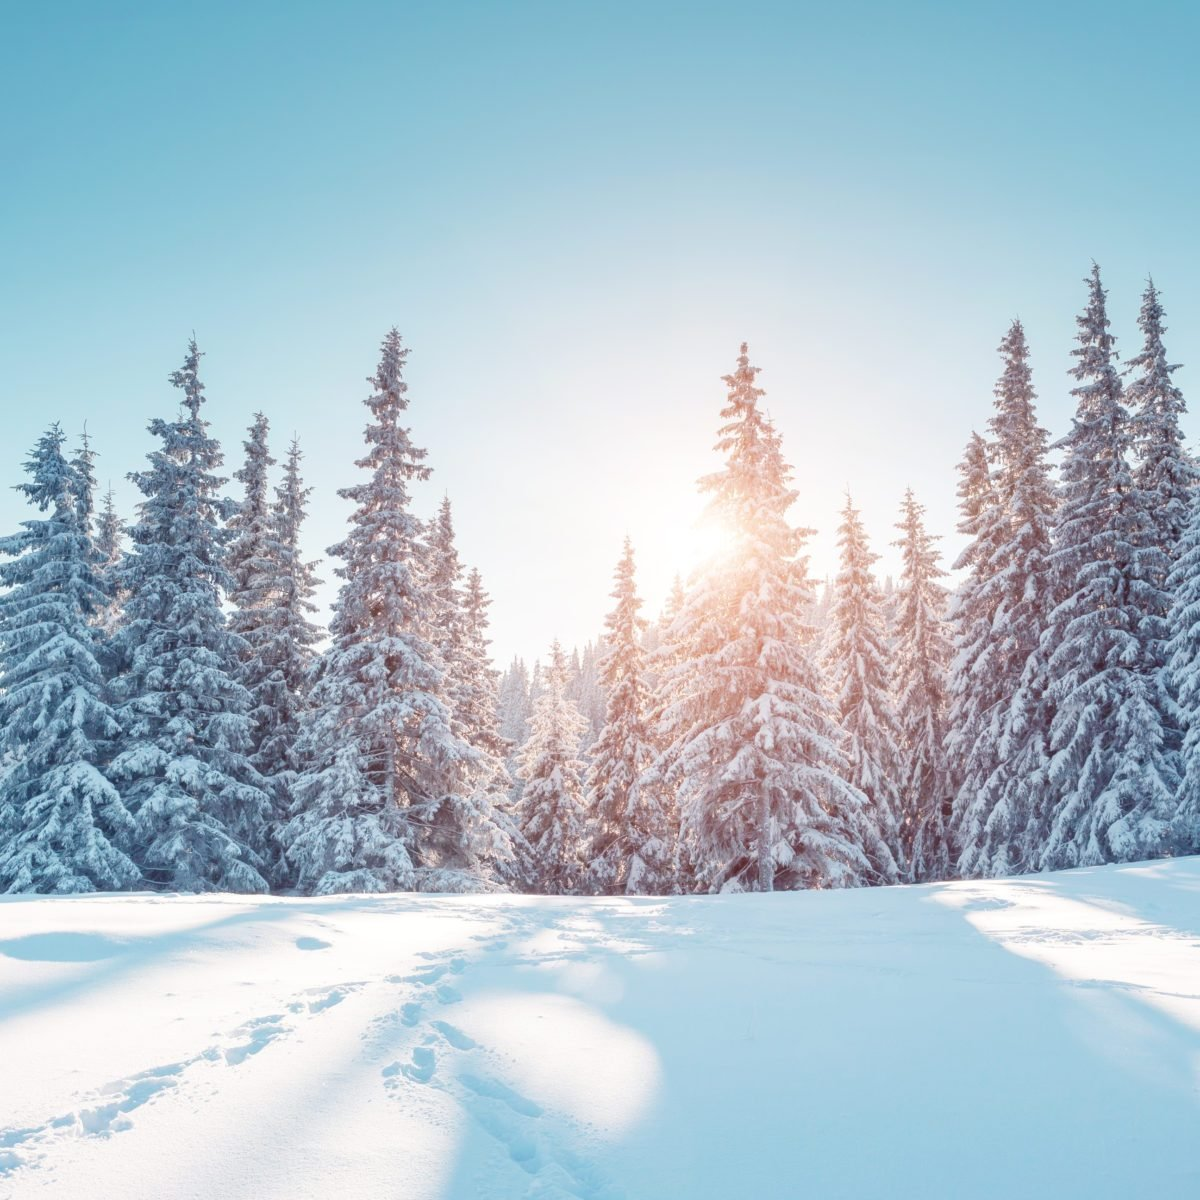 15 Chilling Facts You Never Knew About the Winter Solstice